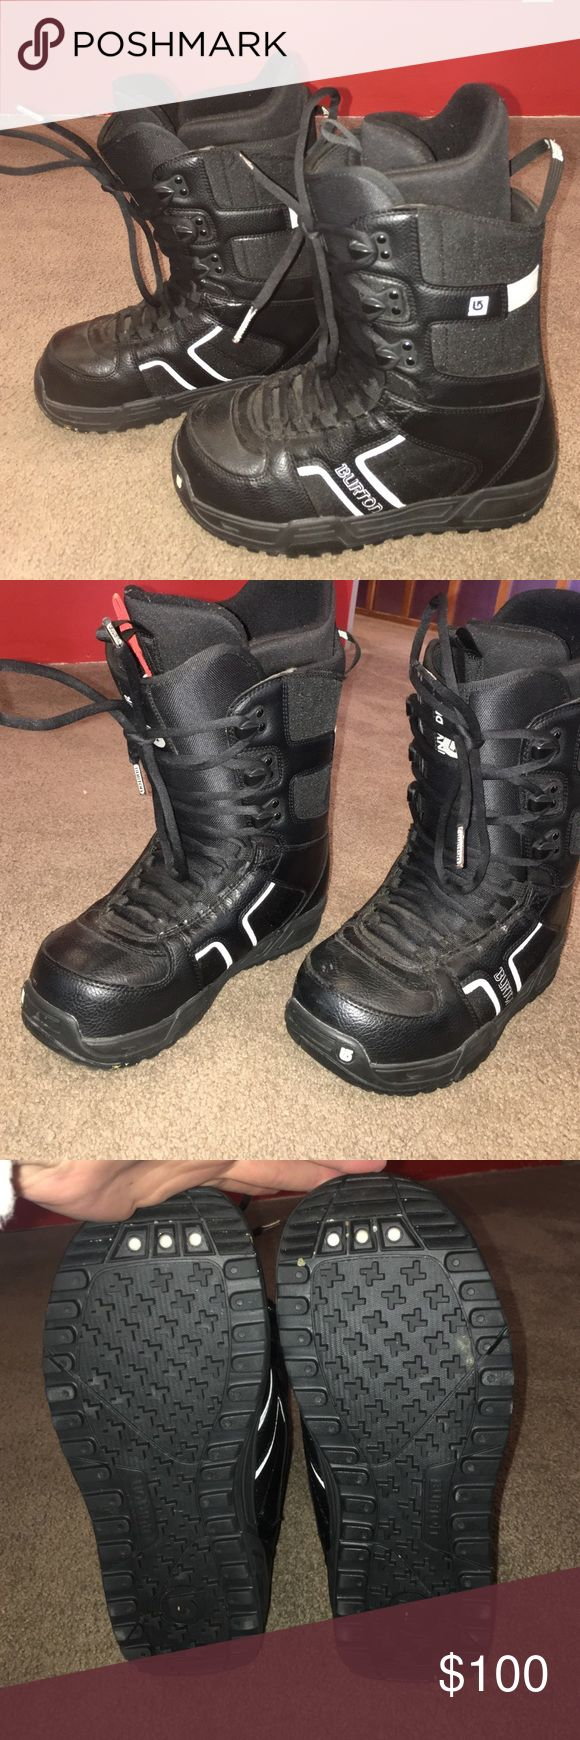 Women's size 10 Burton Snowboard Boots Women's size ten/ men's size 8 Like new Burton Snowboard Boots. Used only a couple times, look new. Burton Shoes Winter & Rain Boots